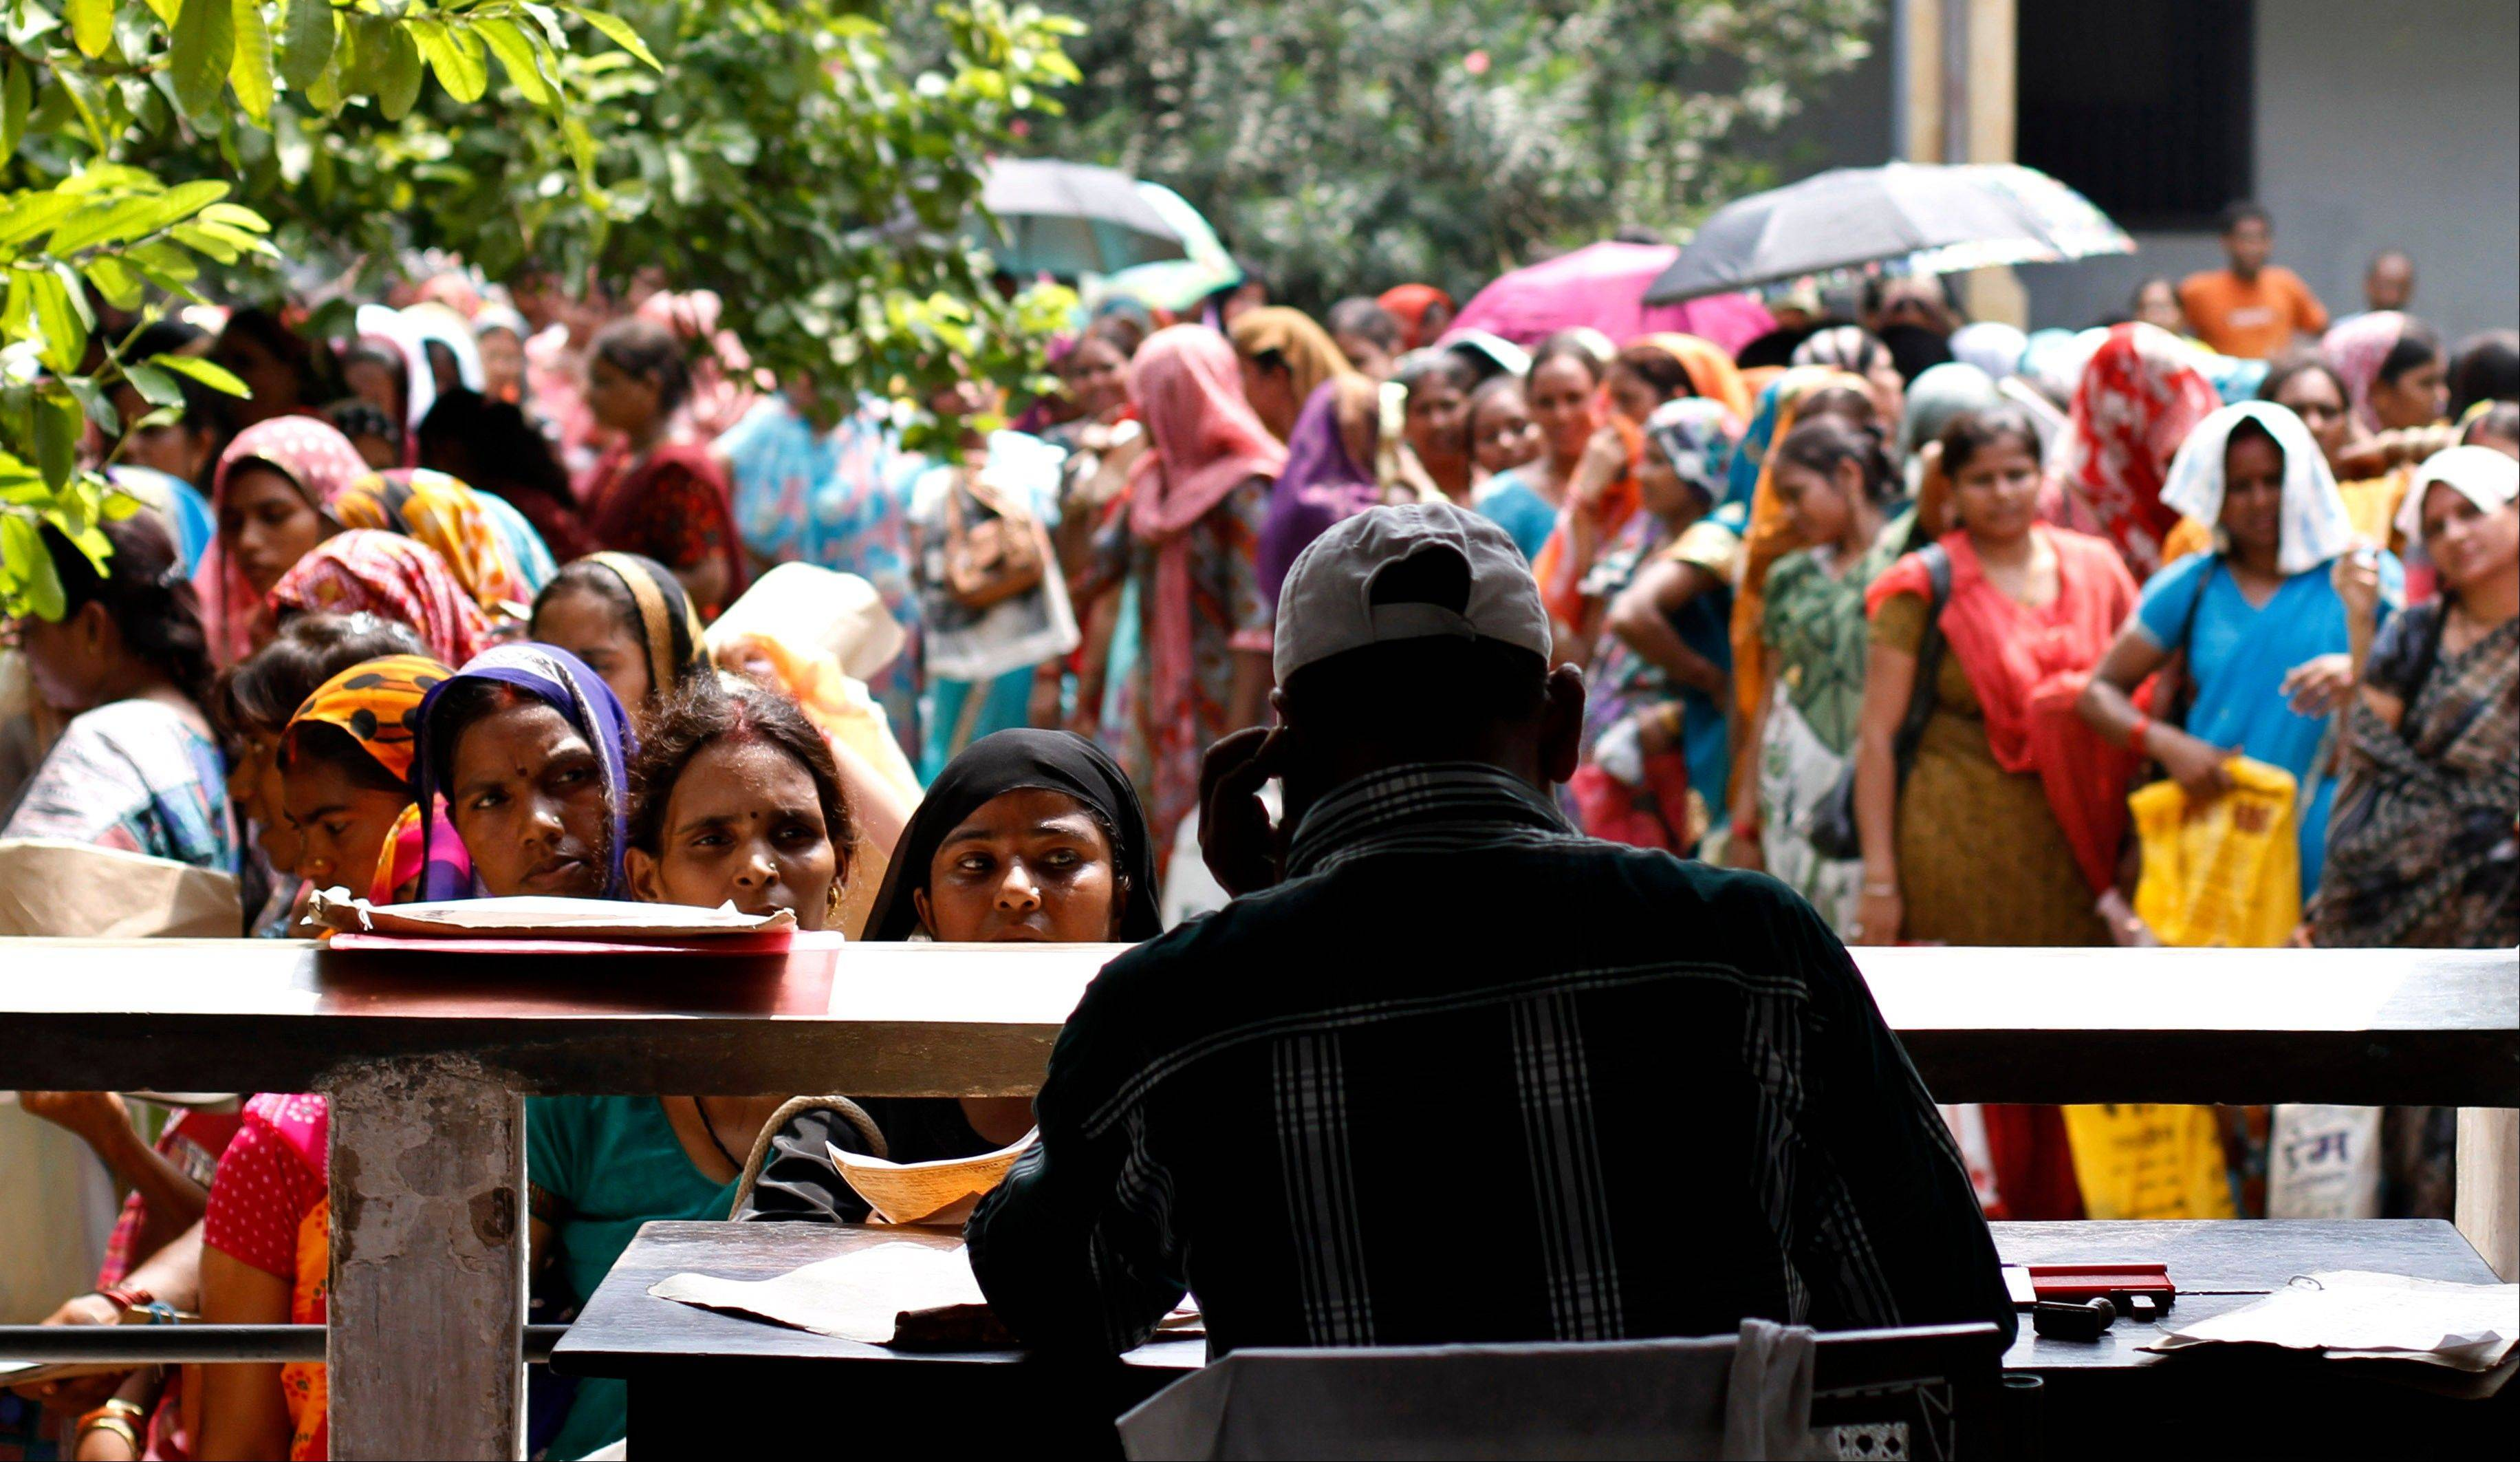 Unemployed educated Indian women stand in queues to register themselves at the Employment Exchange Office in Allahabad, India. India, with the world's largest chunk of illiterates at over 250 million, has to invest heavily in education and skills training, said Ashish Bose, a leading demographer. While millions of jobseekers have impressive sounding diplomas, many don't have the skills promised by those certificates from colleges and technical institutes with poor standards.